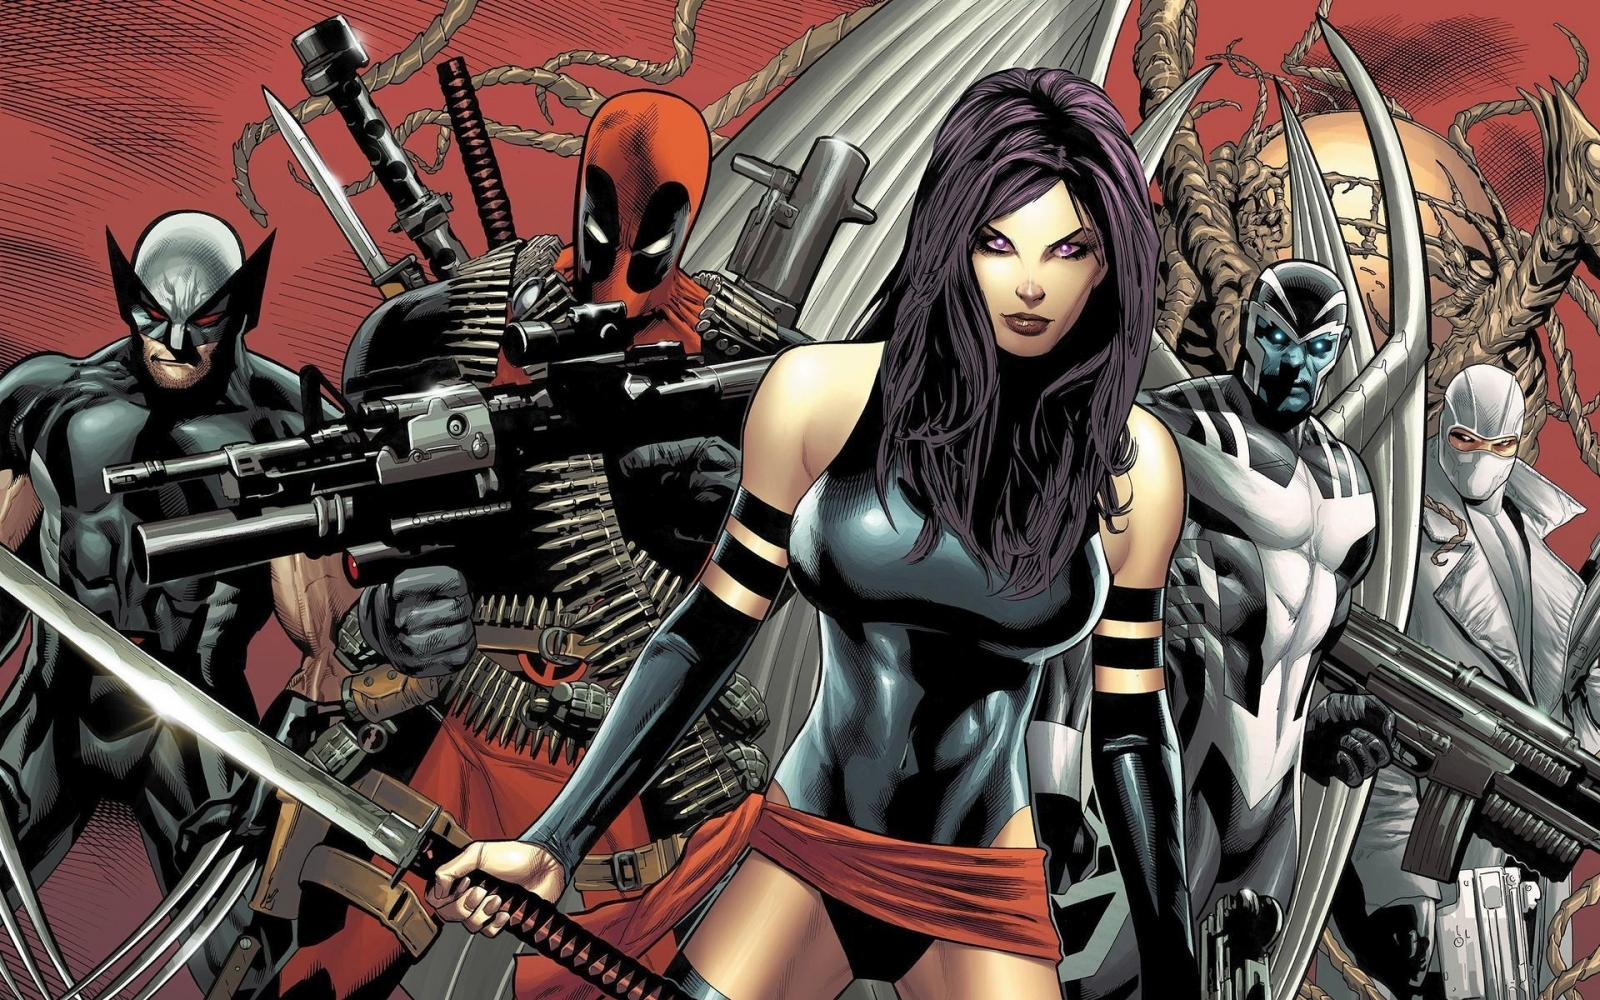 Drew Goddard to Write and Direct X-FORCE